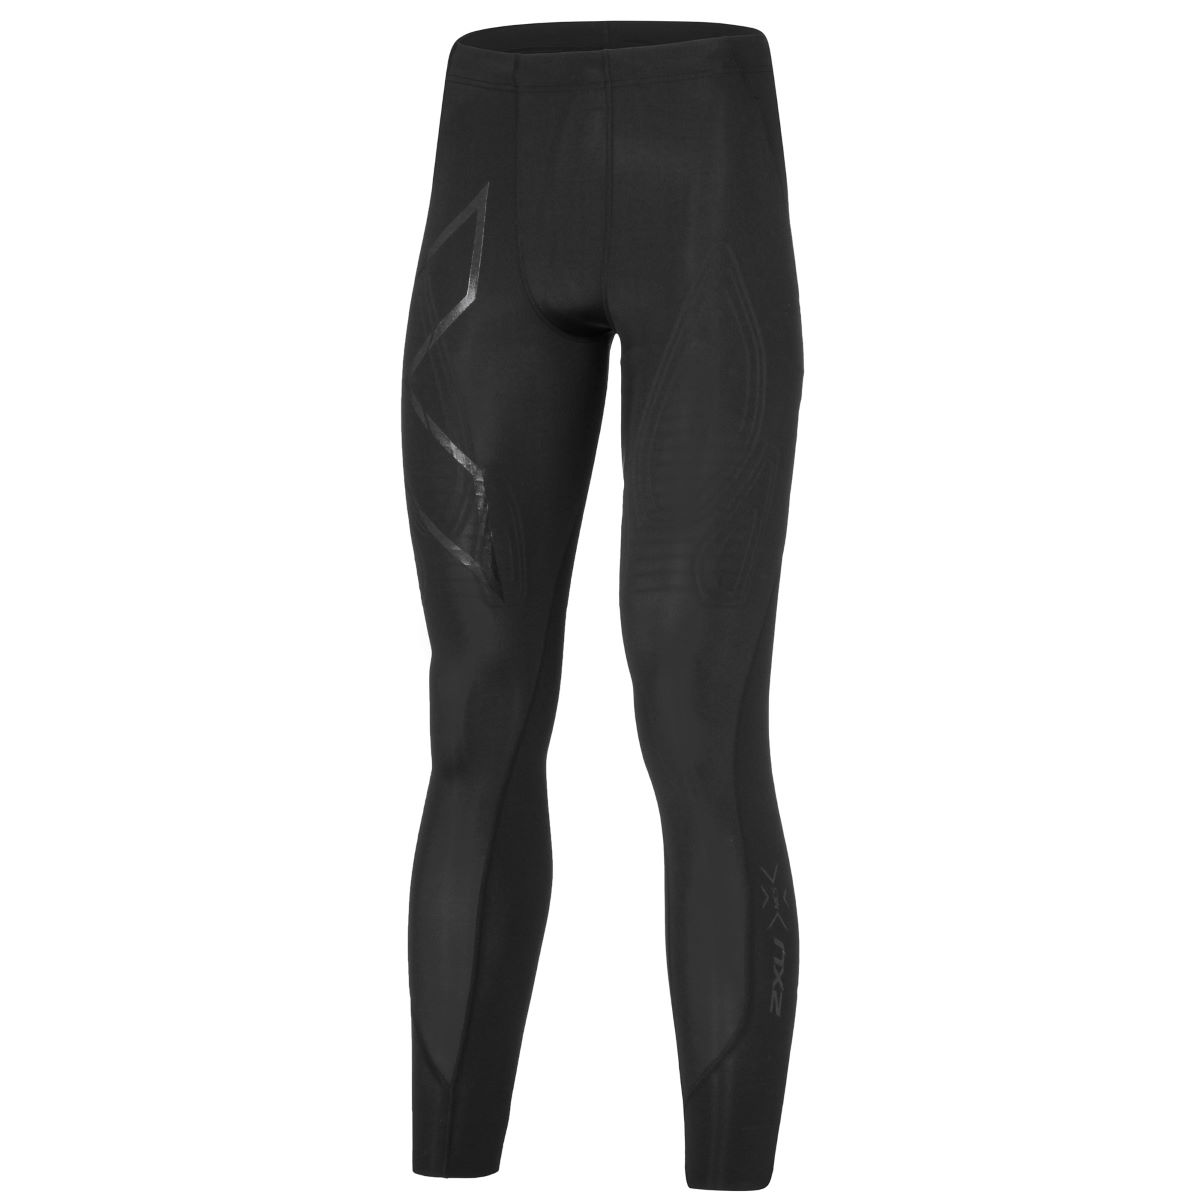 2XU MCS Cross Training Compression Tights   Compression Tights